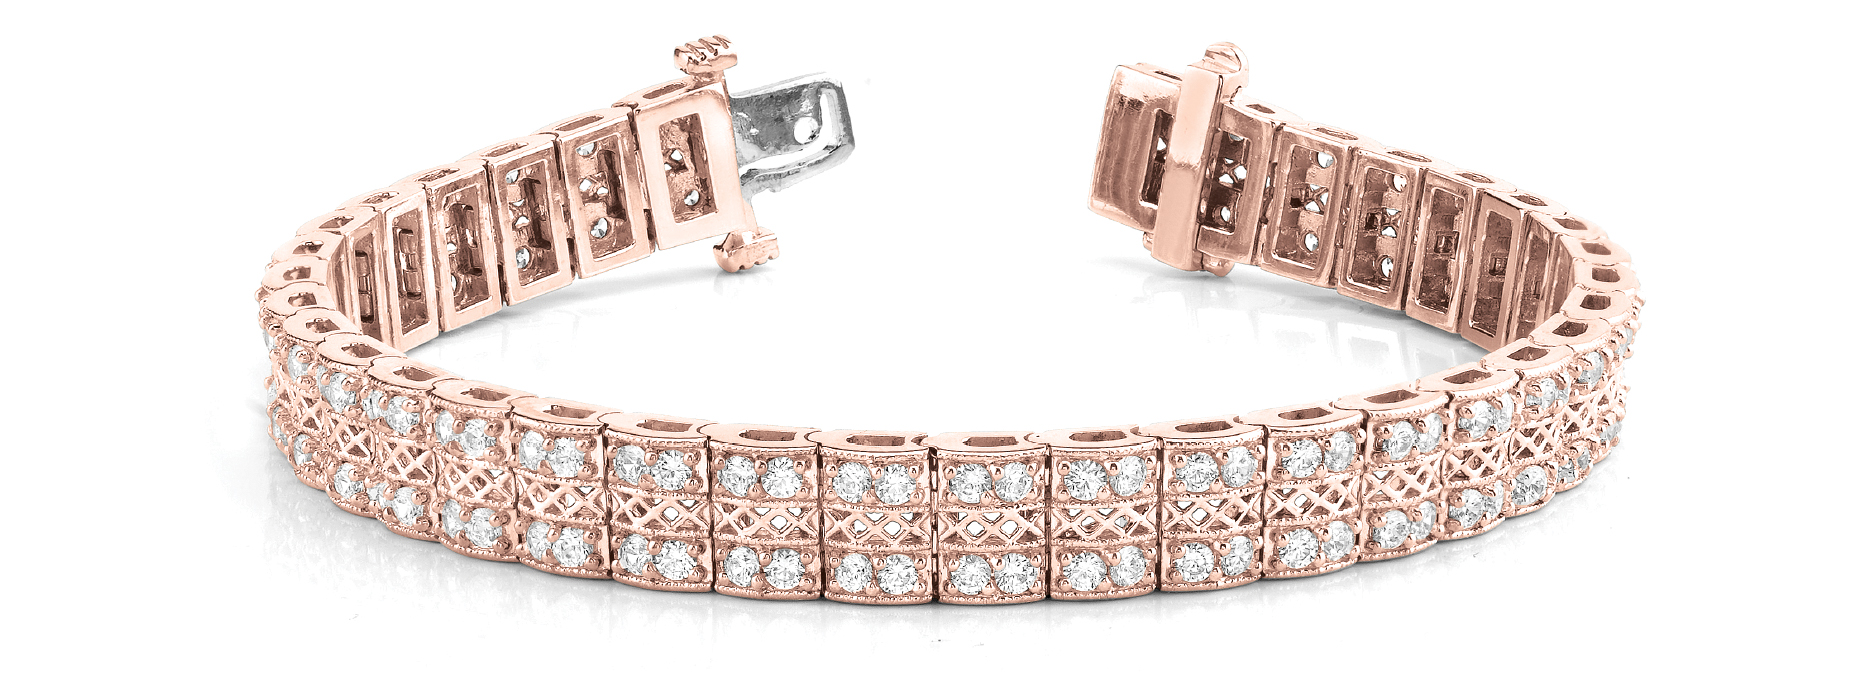 Multi Row Duo Round Diamond Filigree Bracelet 4.06 Ct. Rose Gold